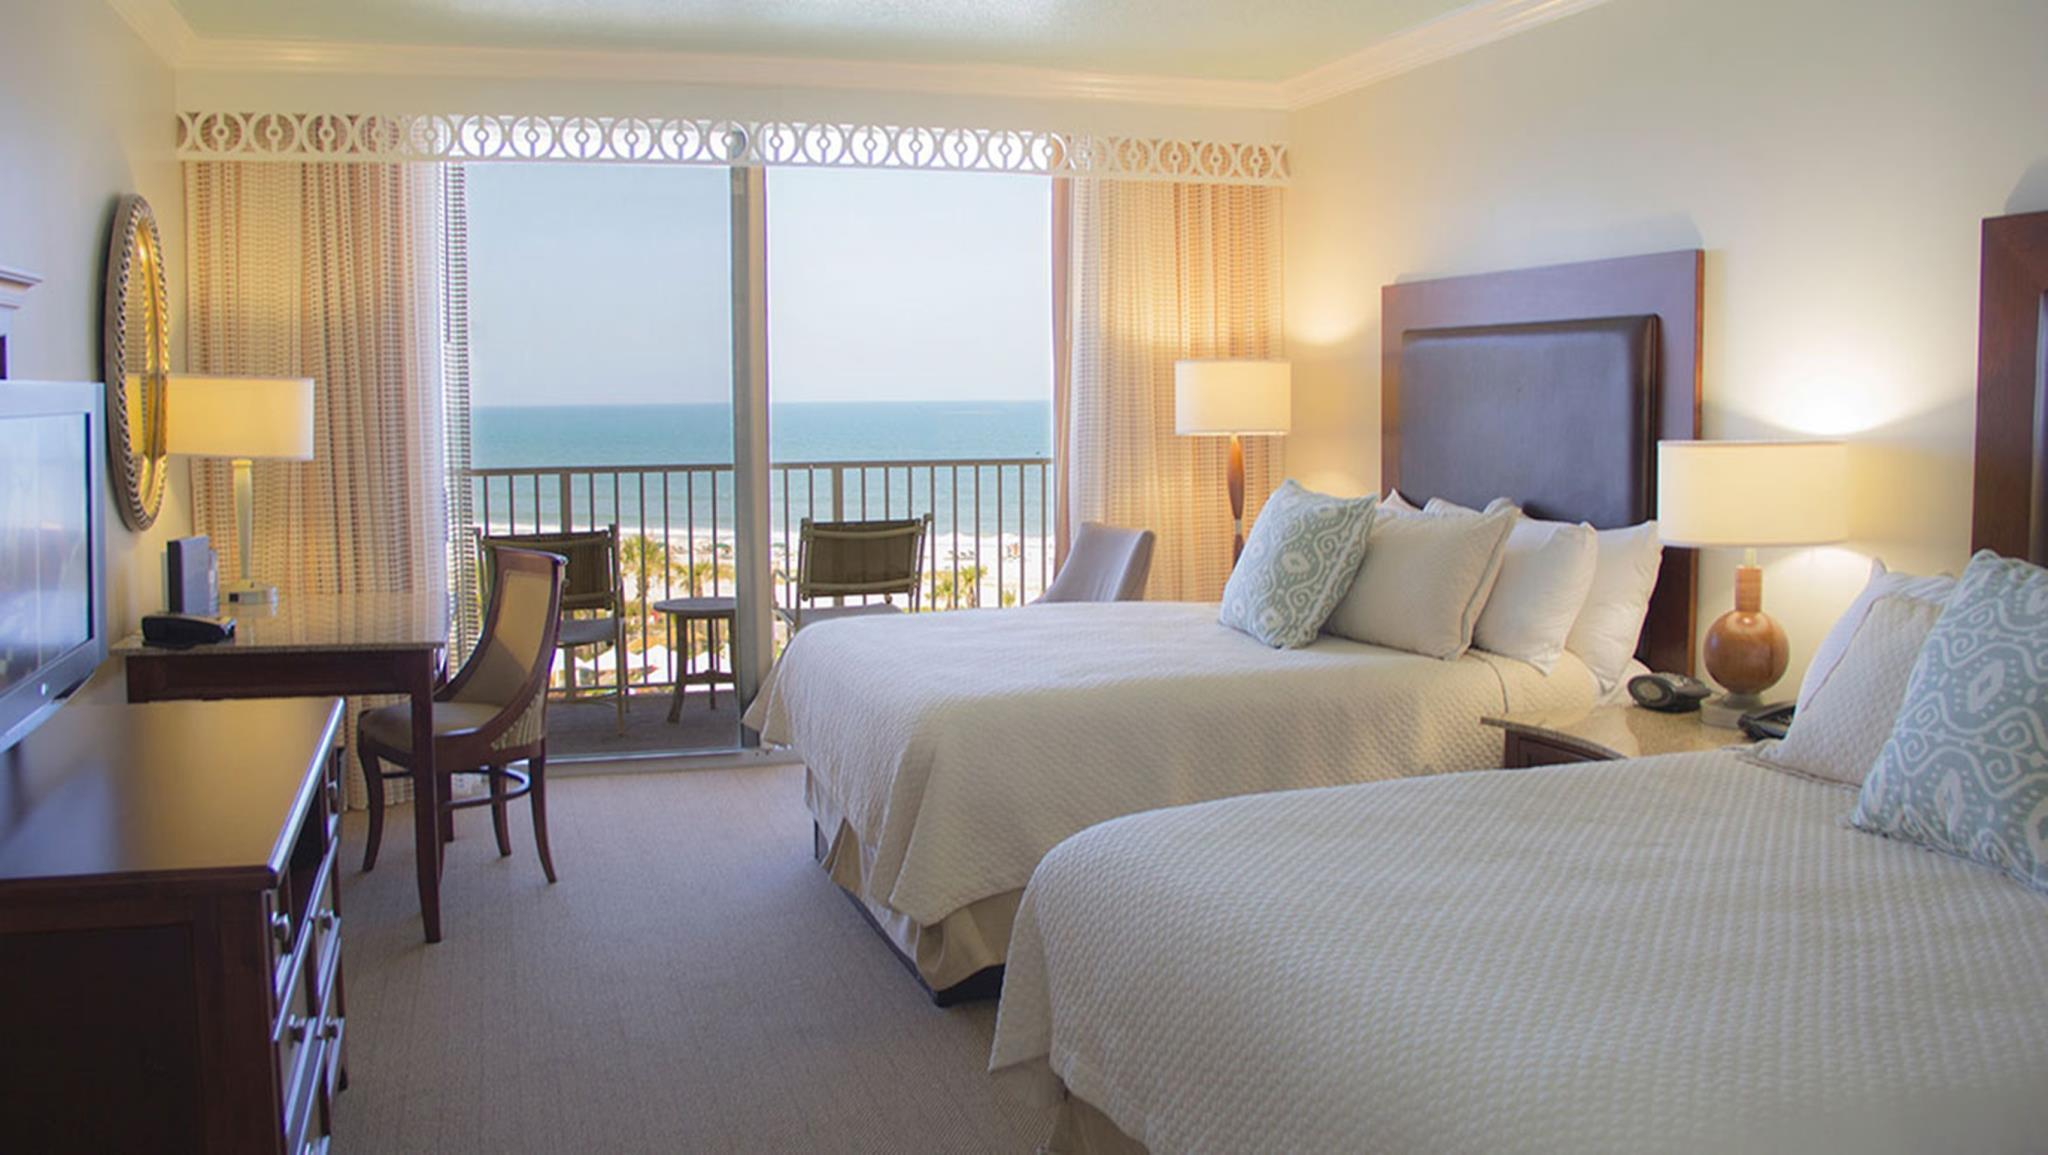 Deluxe Ocean View Room – 2 Queen Beds